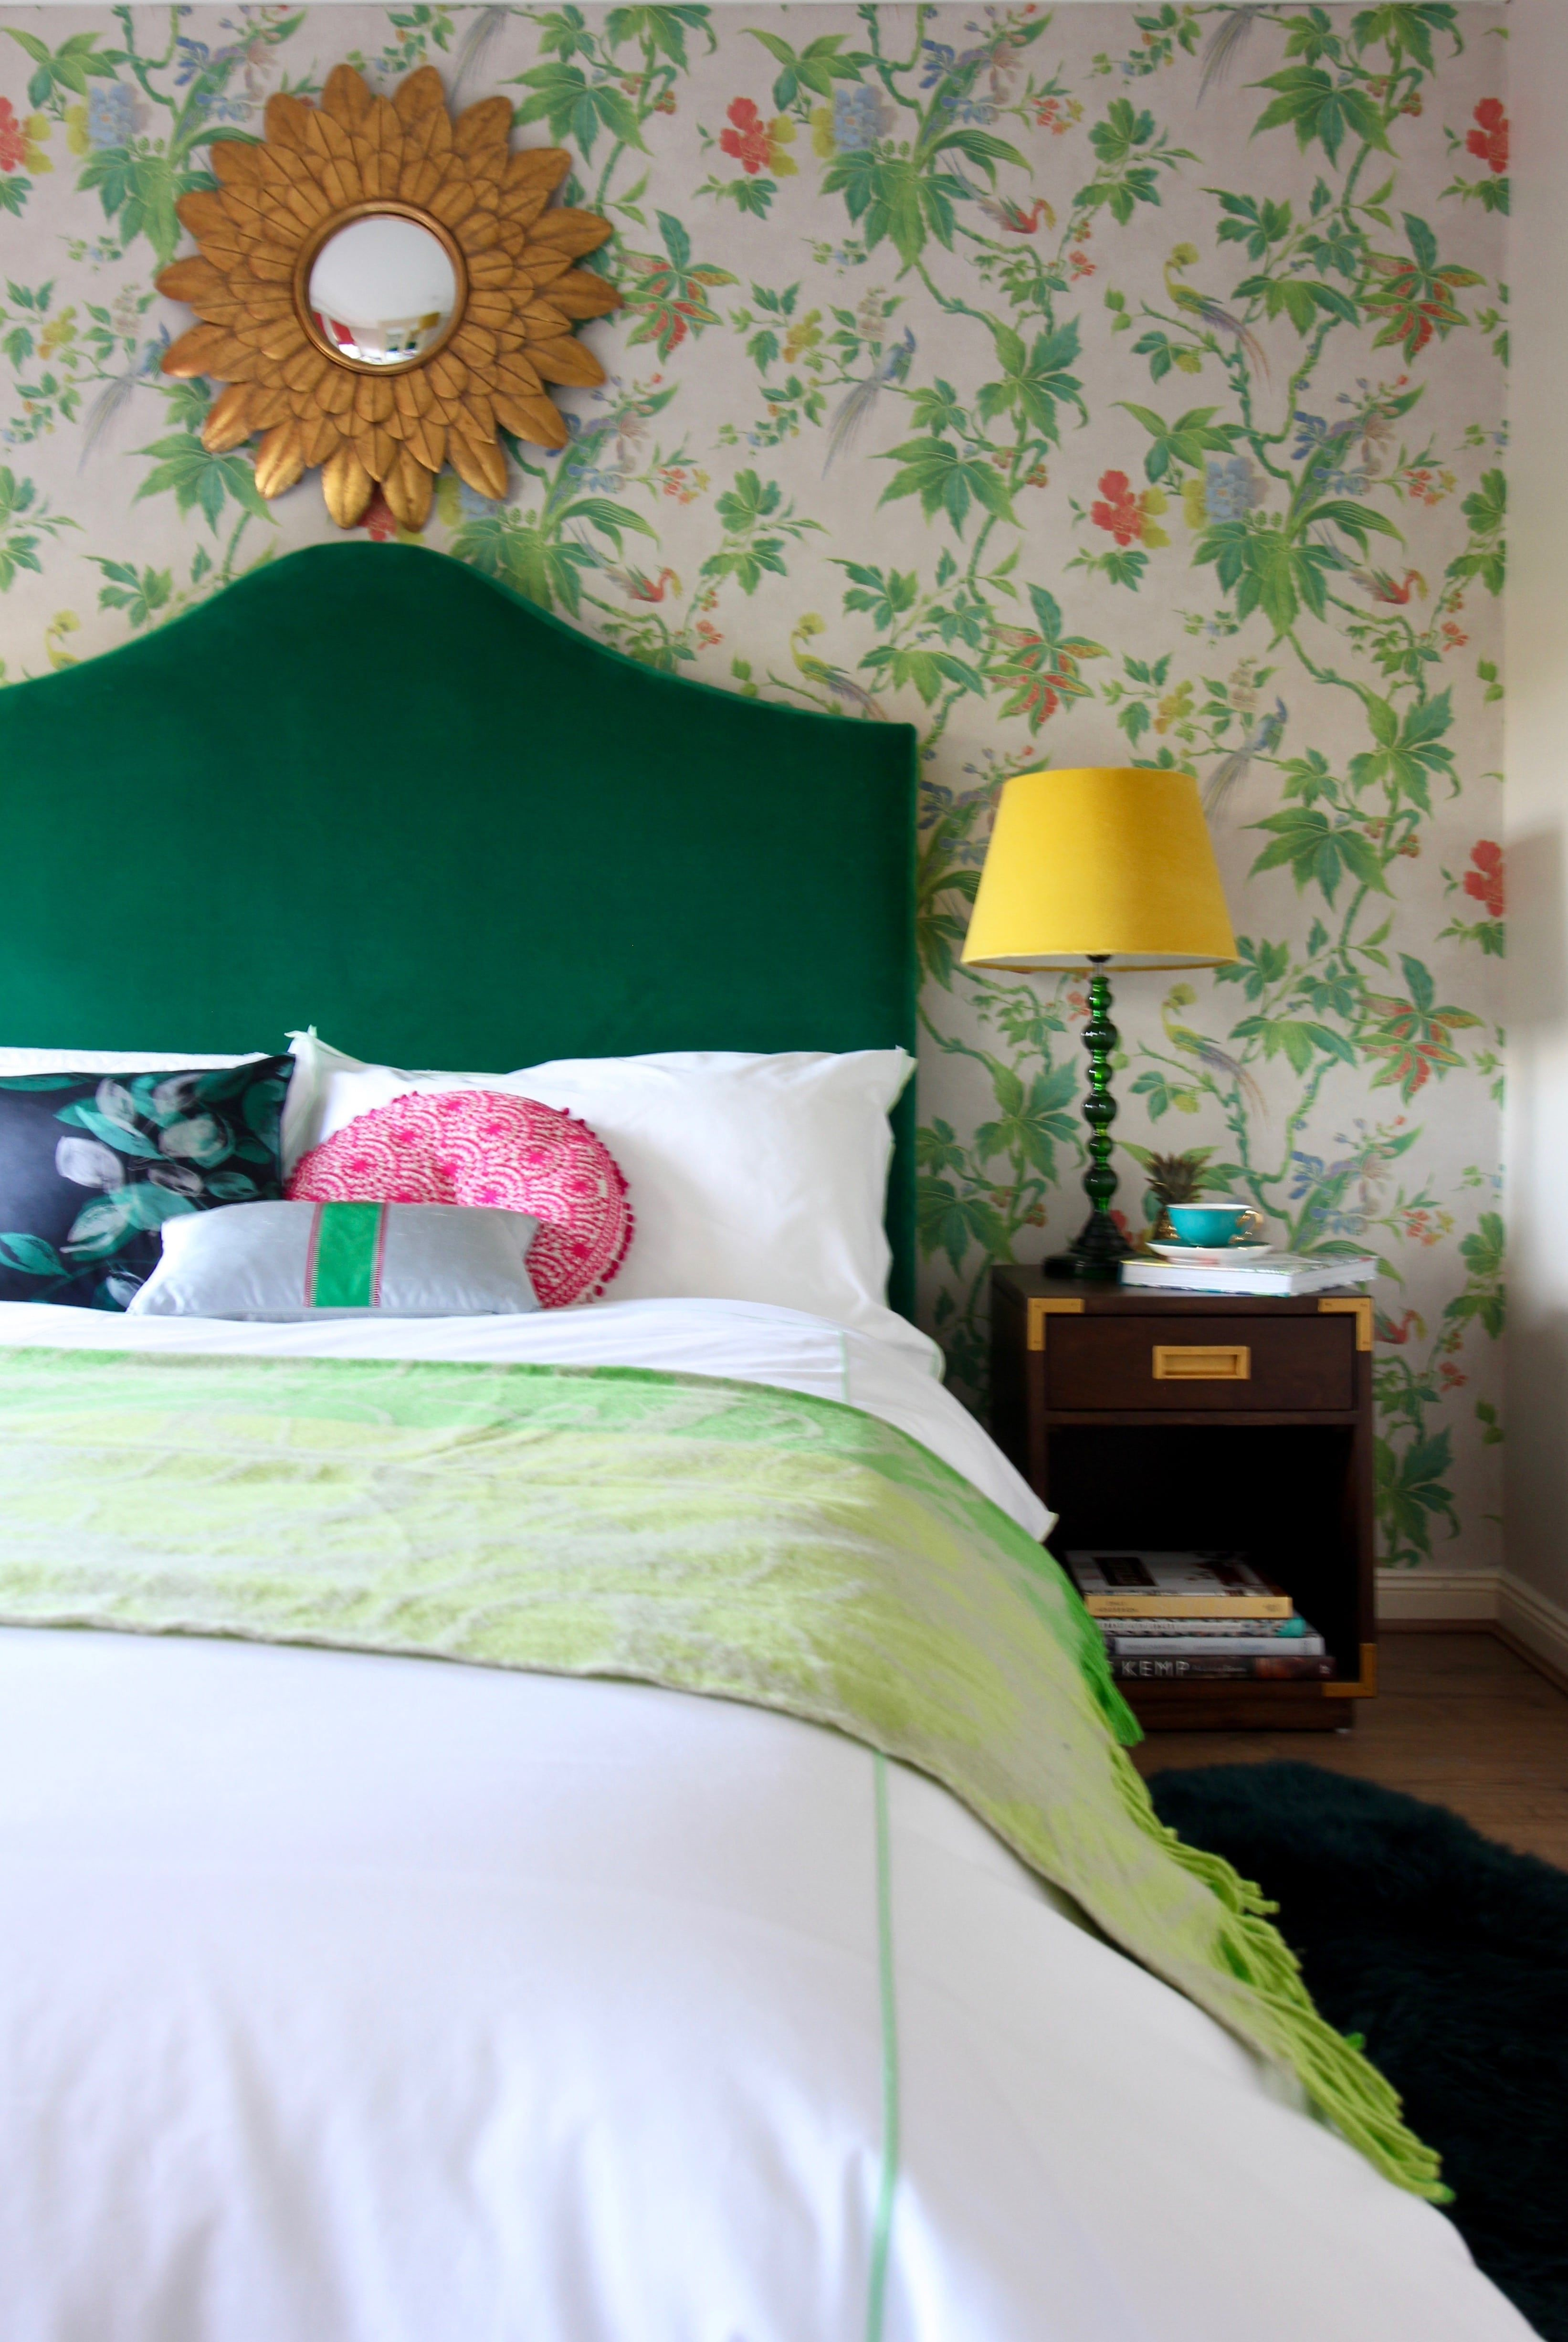 #bedroomideas Green Upholstered Bed From Sofas And Stuff And Floral  Wallpaper From Little Greene With